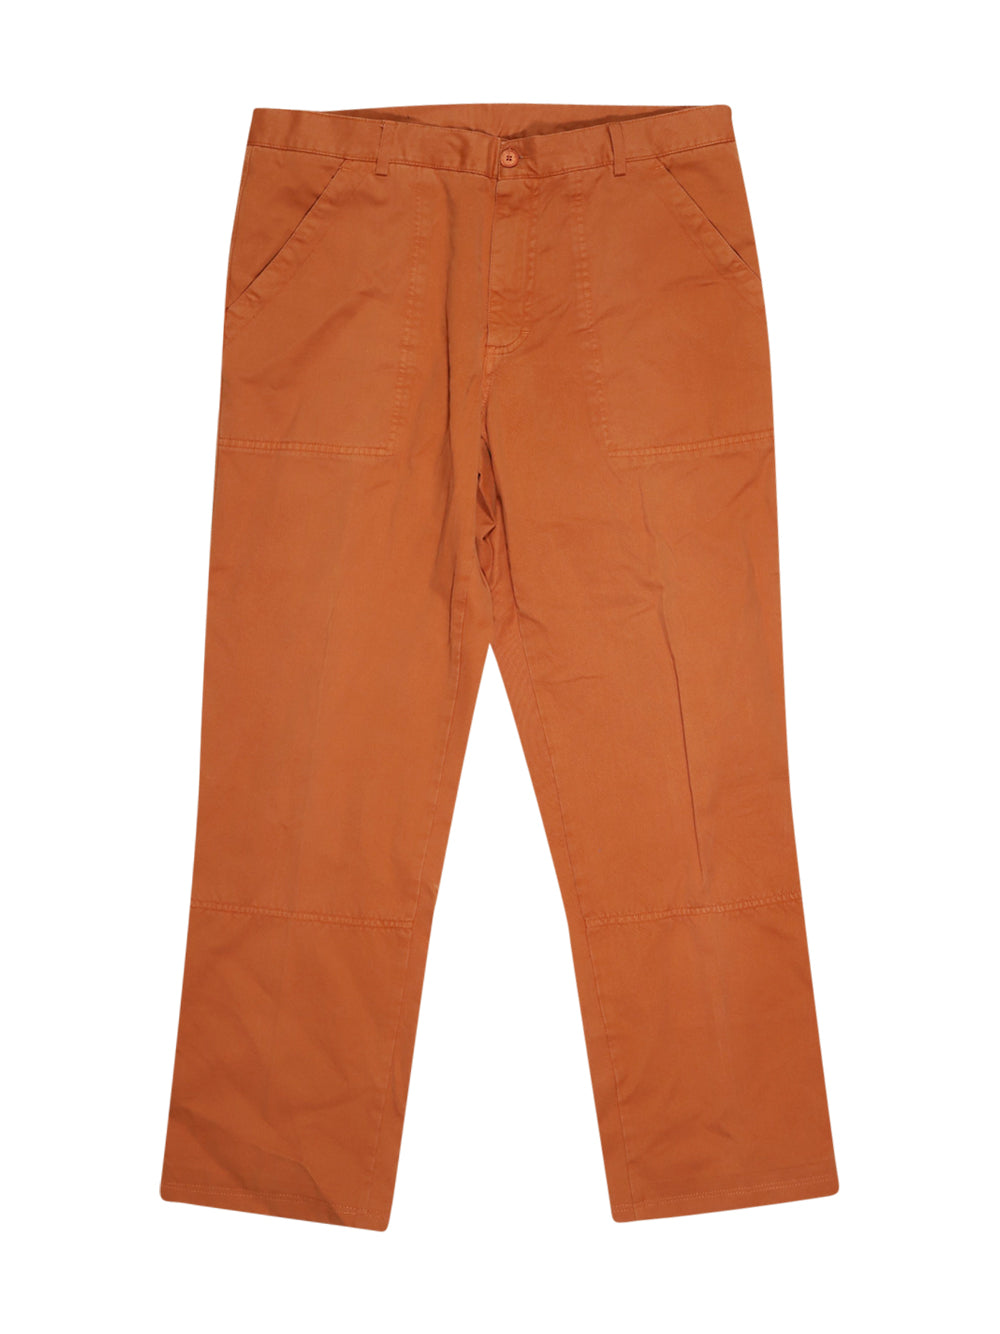 Front photo of Preloved COTTON'S INDUSTRIES Orange Man's trousers - size 44/XXL